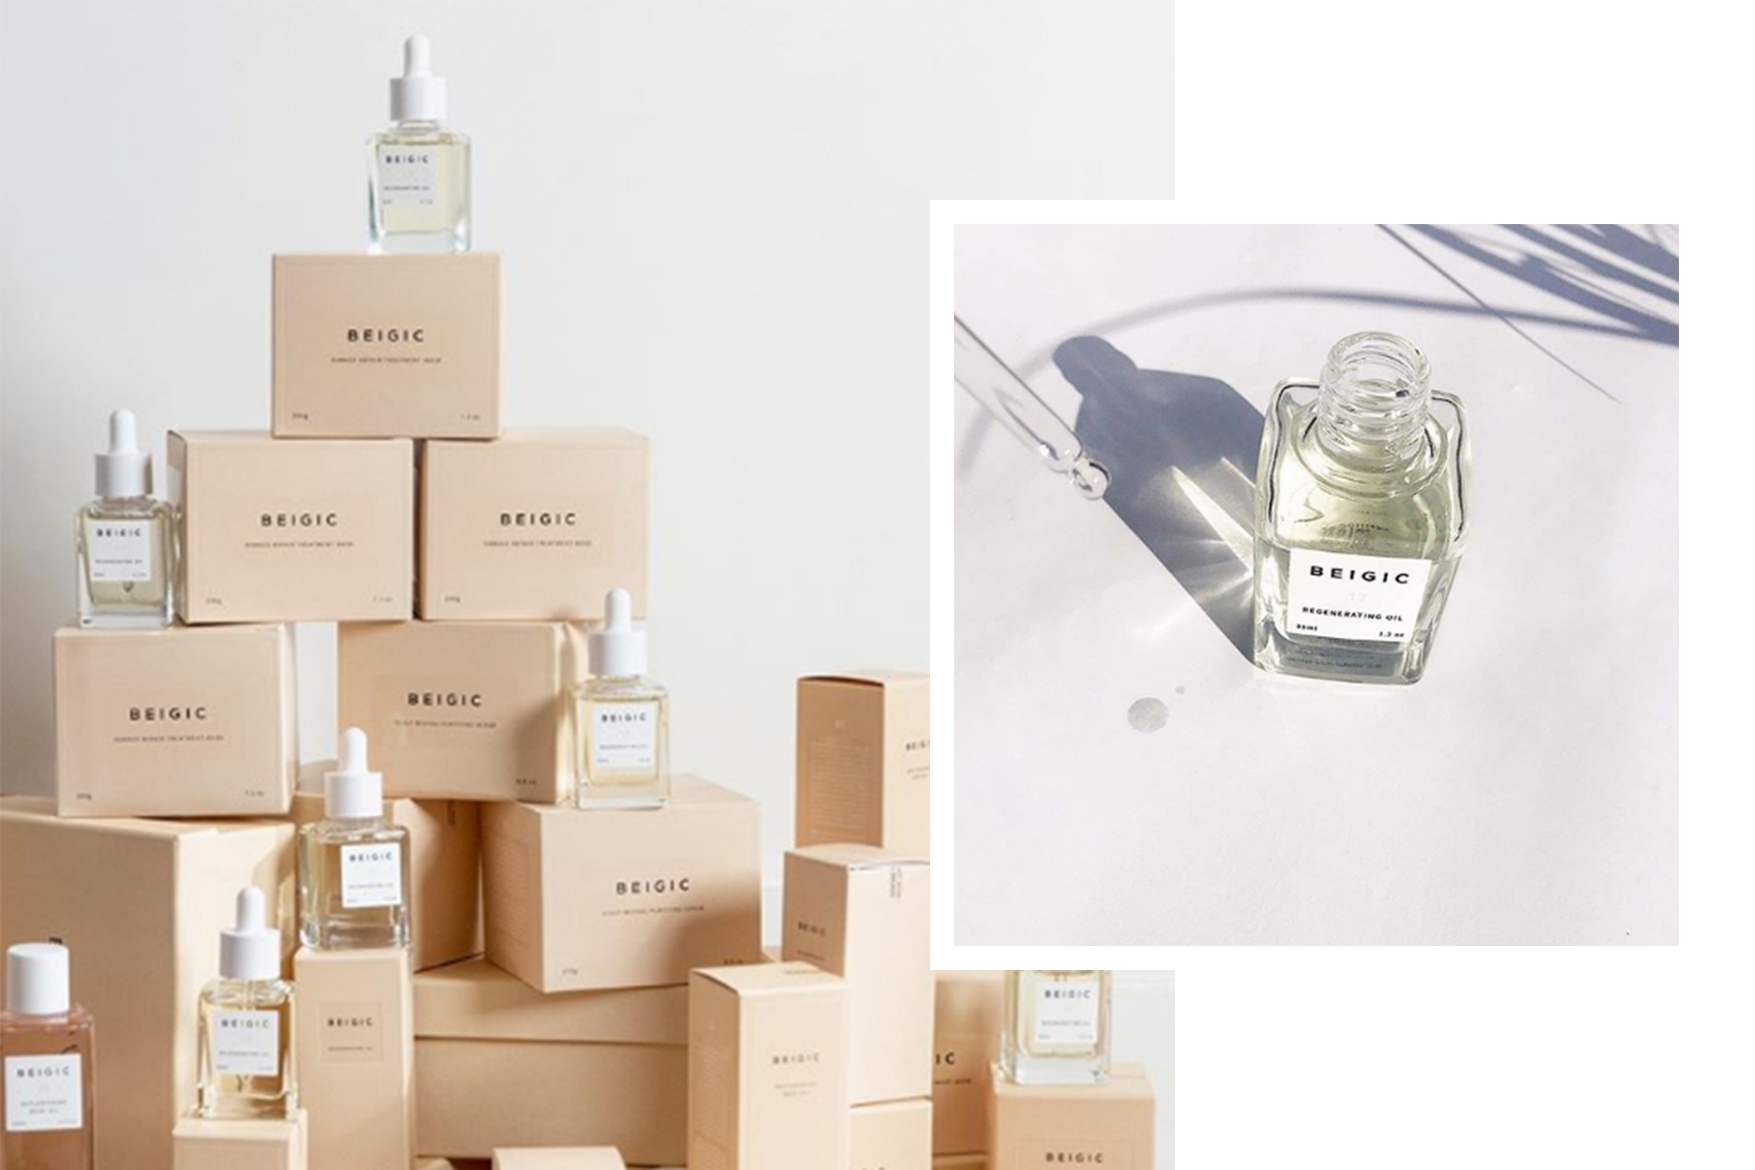 korean vegan indie skincare brand BEIGIC